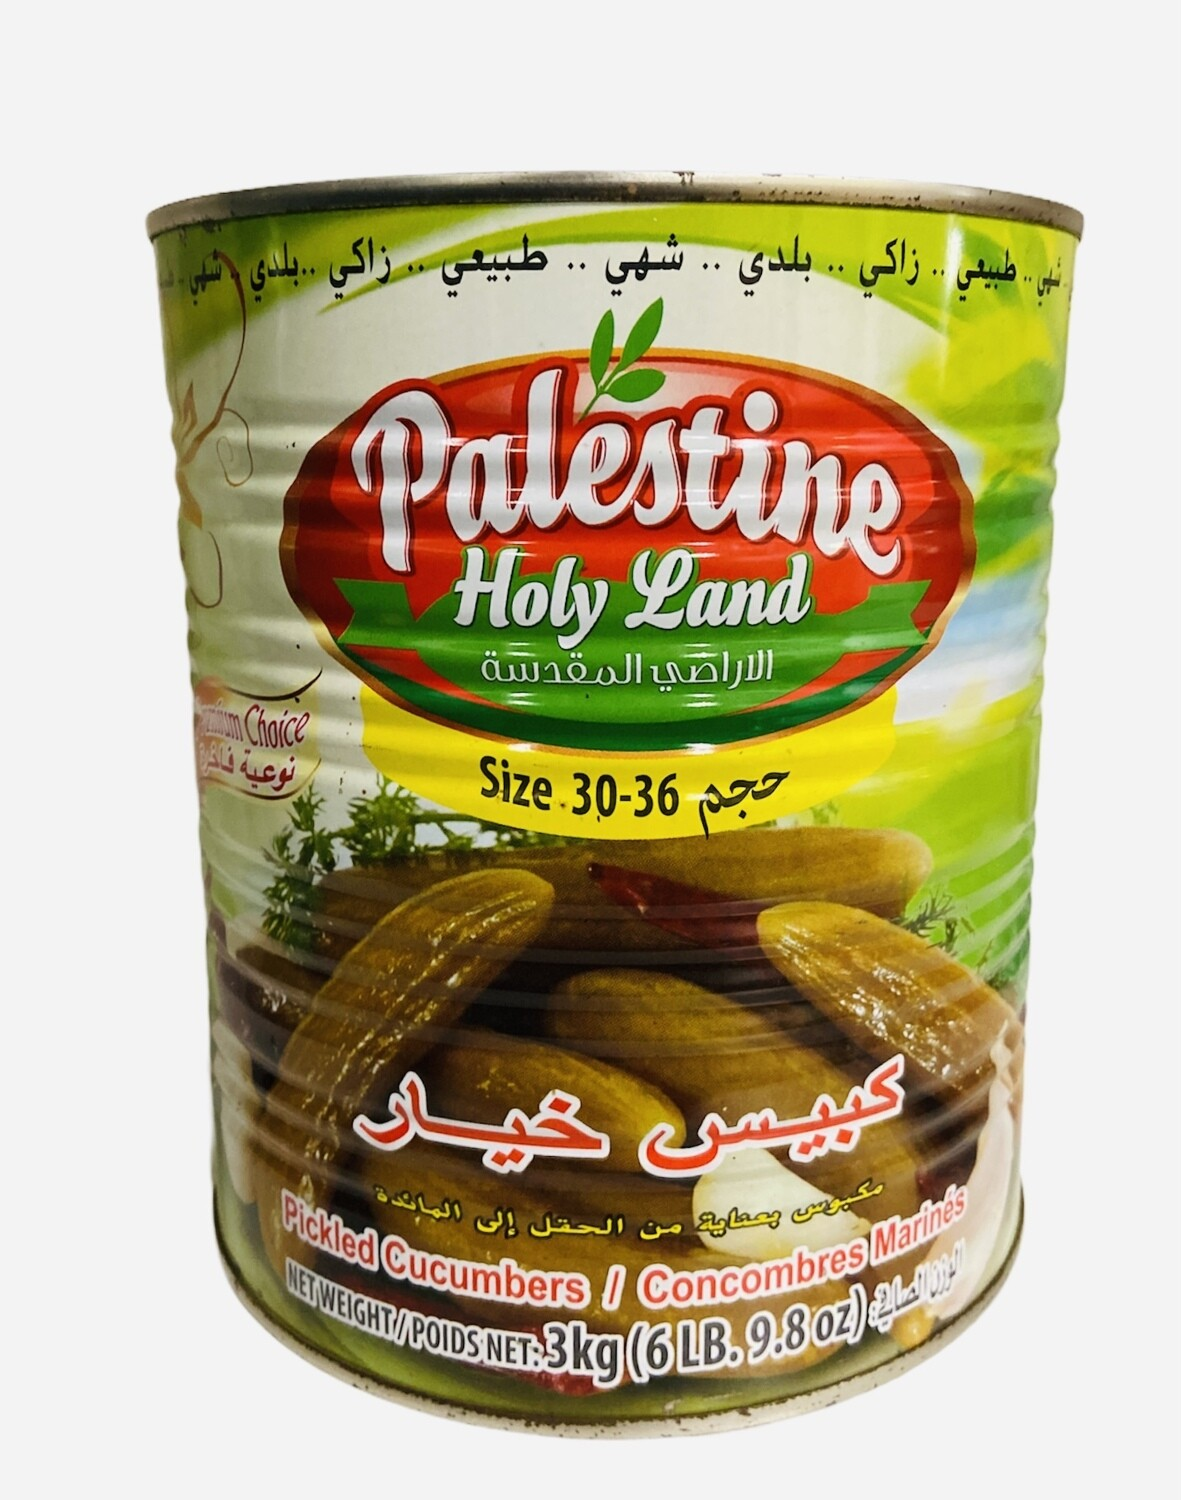 Palestine Holy Land Pickled Cucumbers Count 30/36 6x6lb